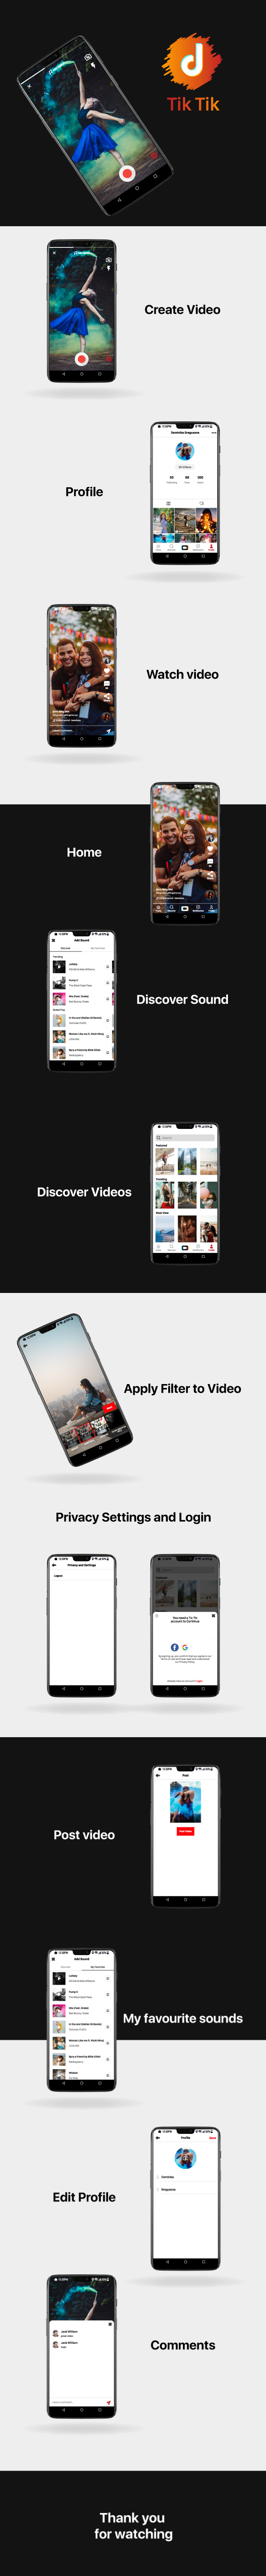 TicTic - Android media app for creating and sharing short videos v2.3 - 4 TicTic - Android media app for creating and sharing short videos v2.4 Nulled Free Download TicTic – Android media app for creating and sharing short videos v2.4 Nulled Free Download cover 4